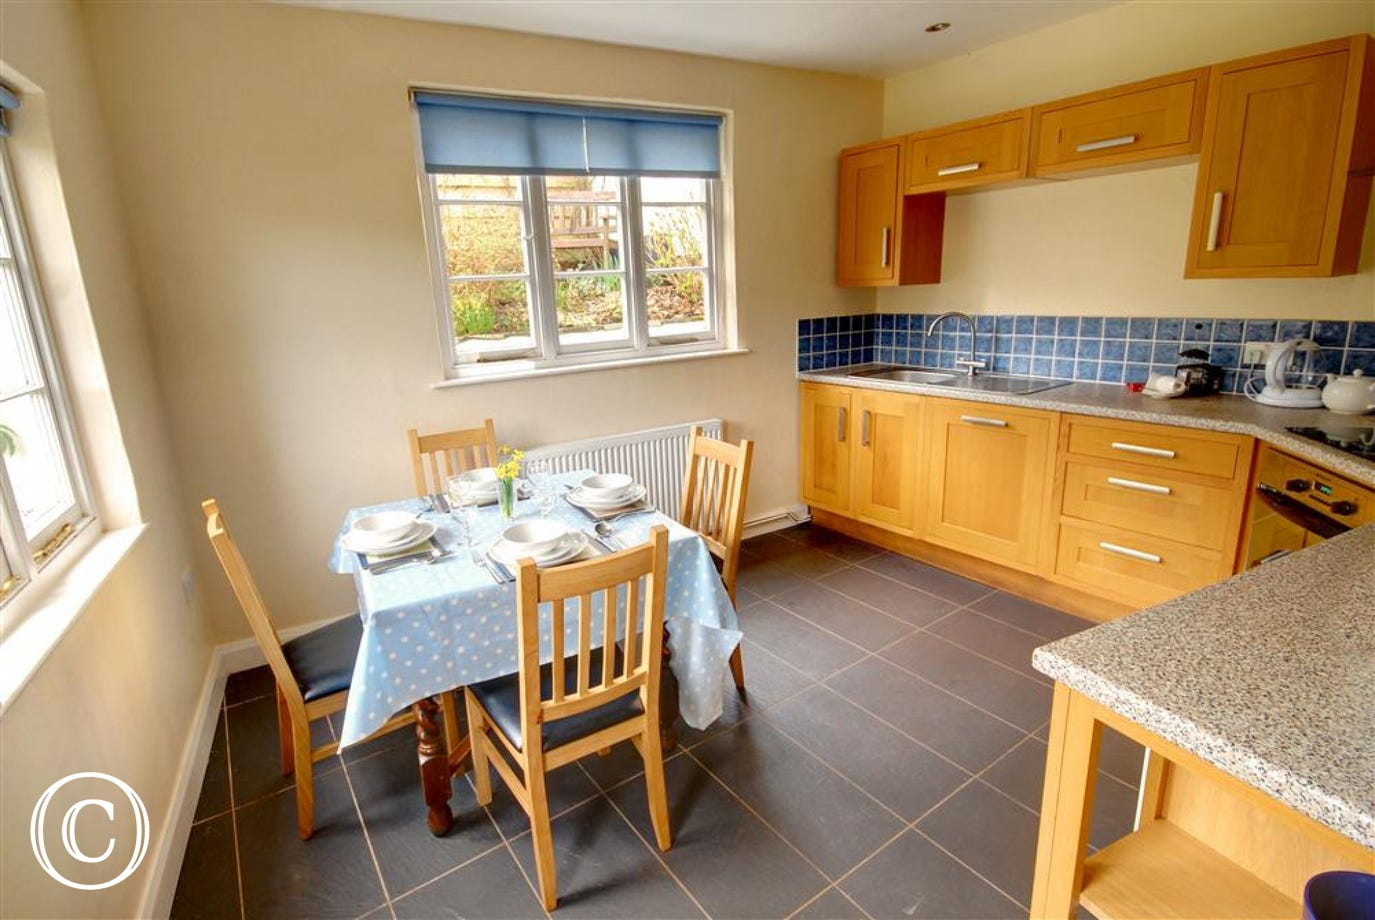 The modern kitchen features a slate tiled floor complimented by granite style worktops and is well equipped for all your needs